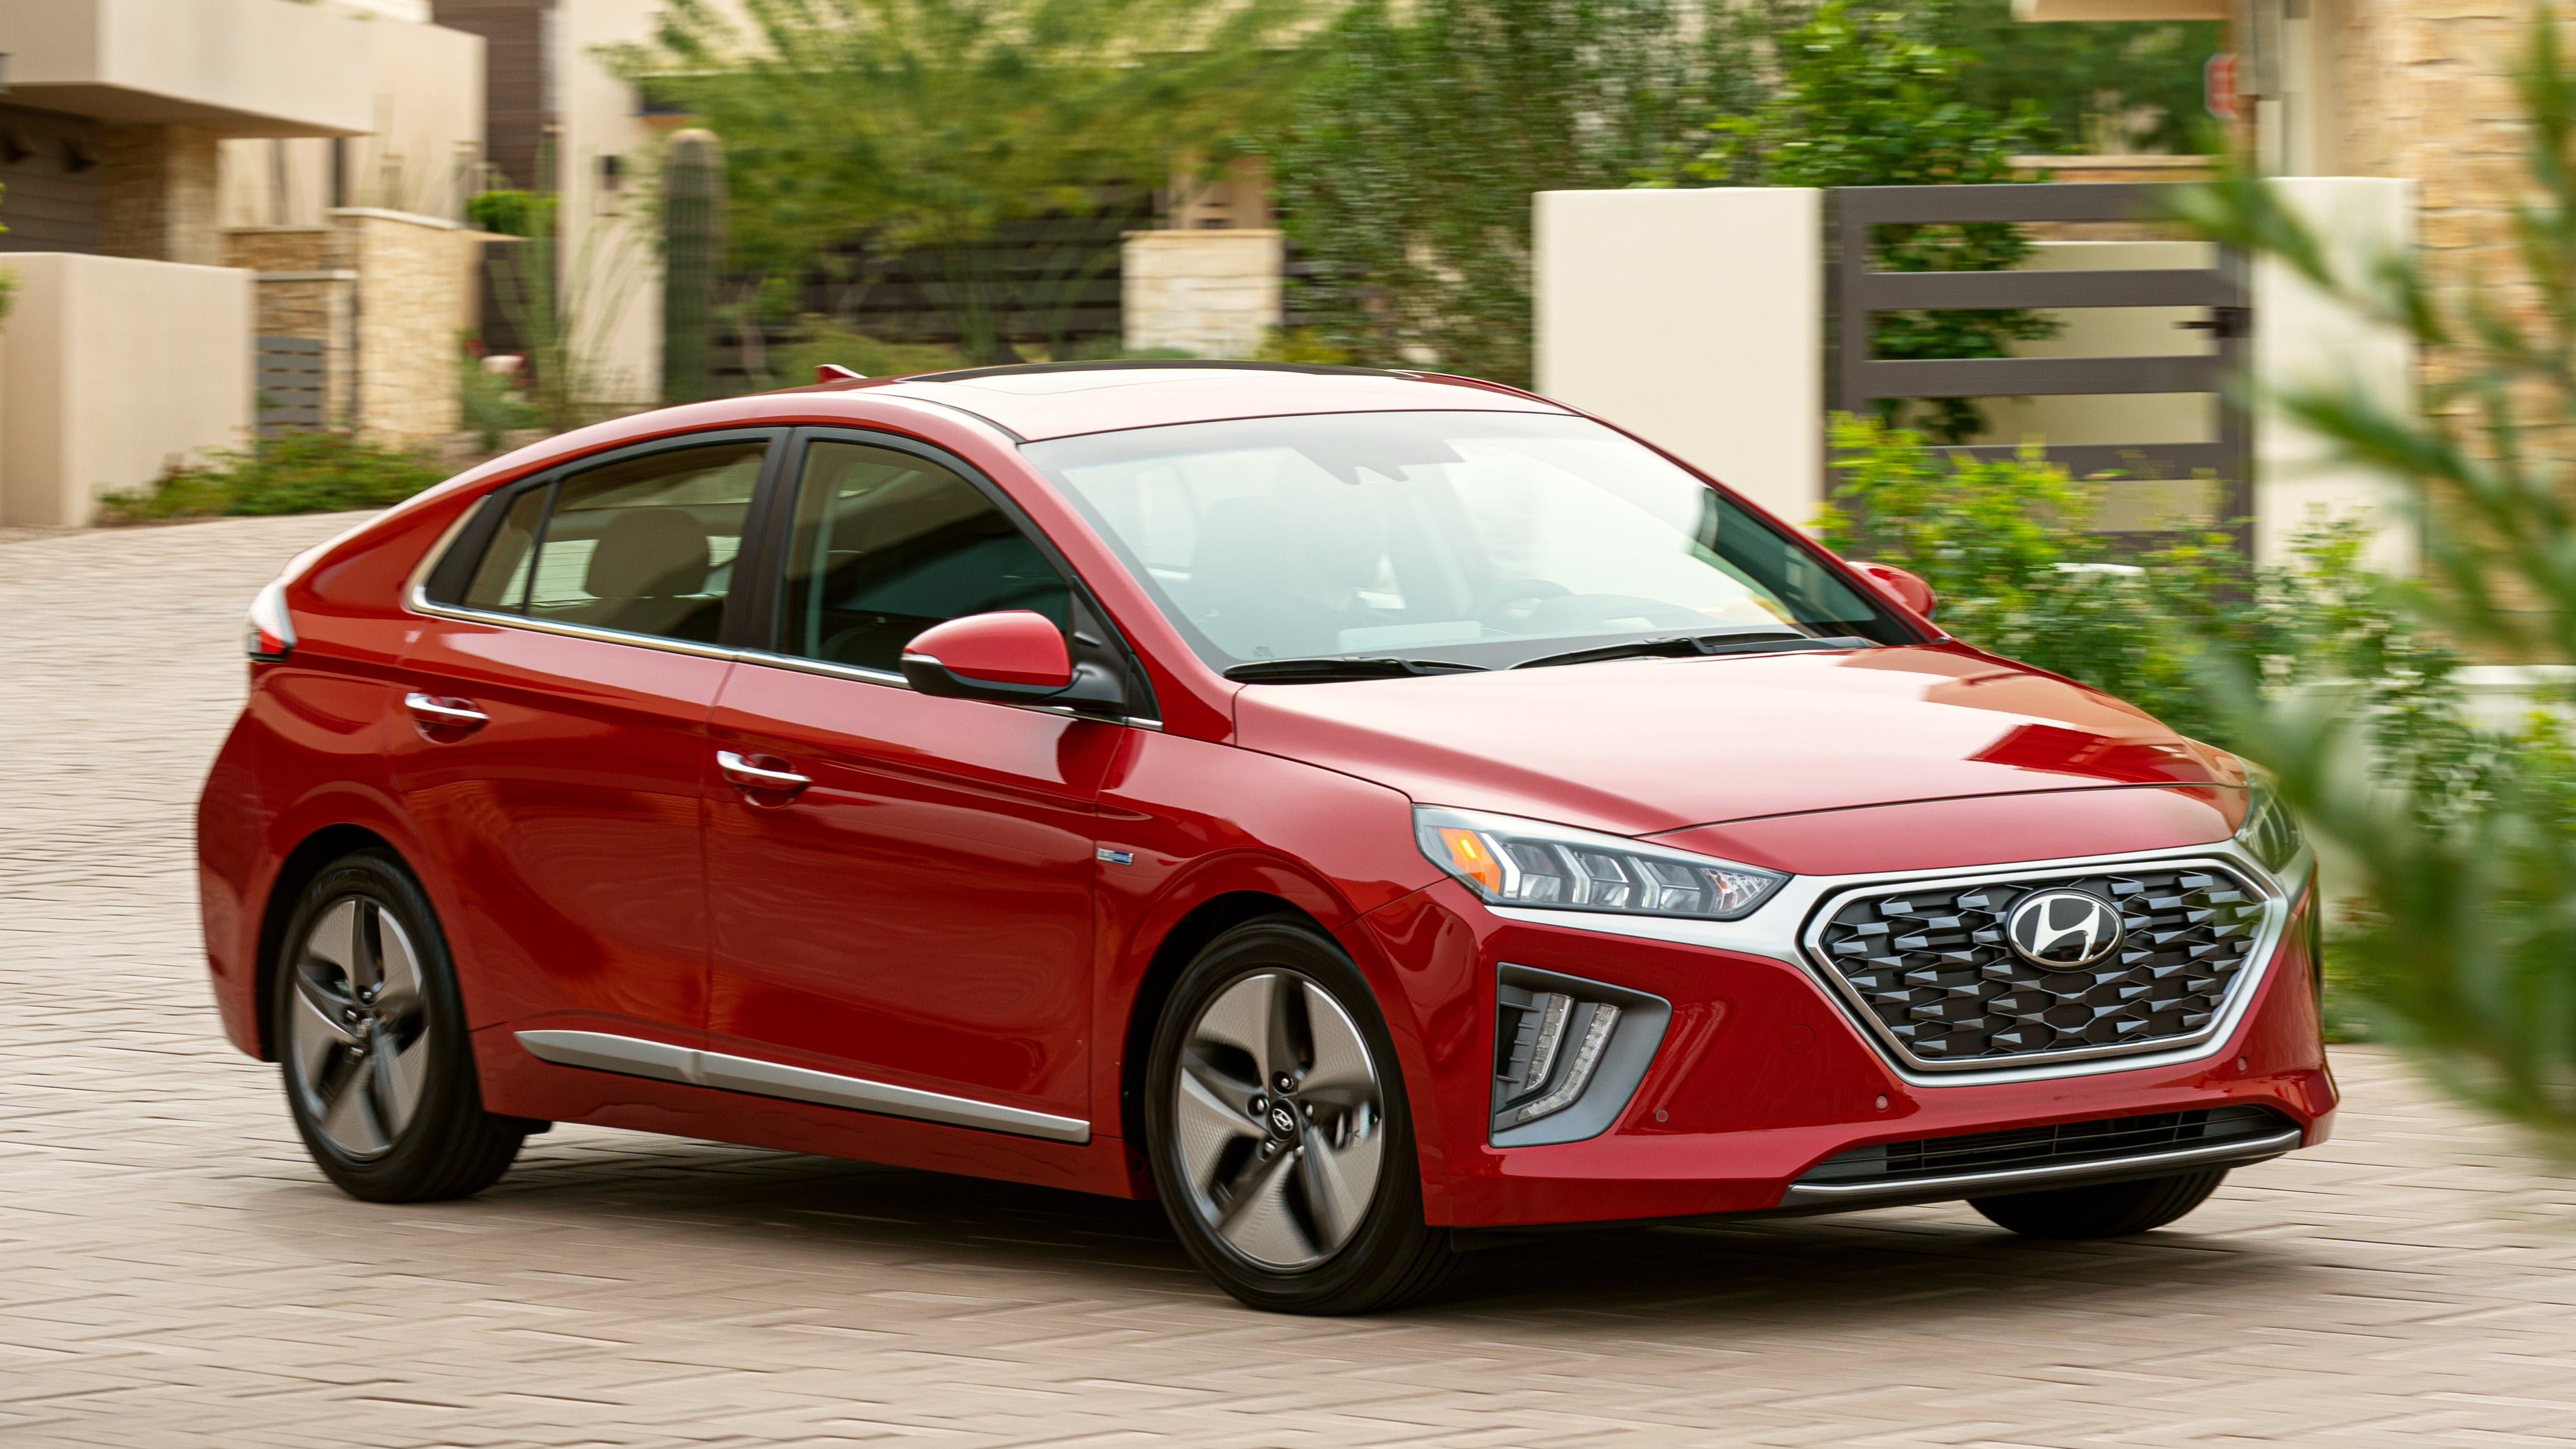 Best Hybrid Cars For Gas Mileage In 2020 Carfax